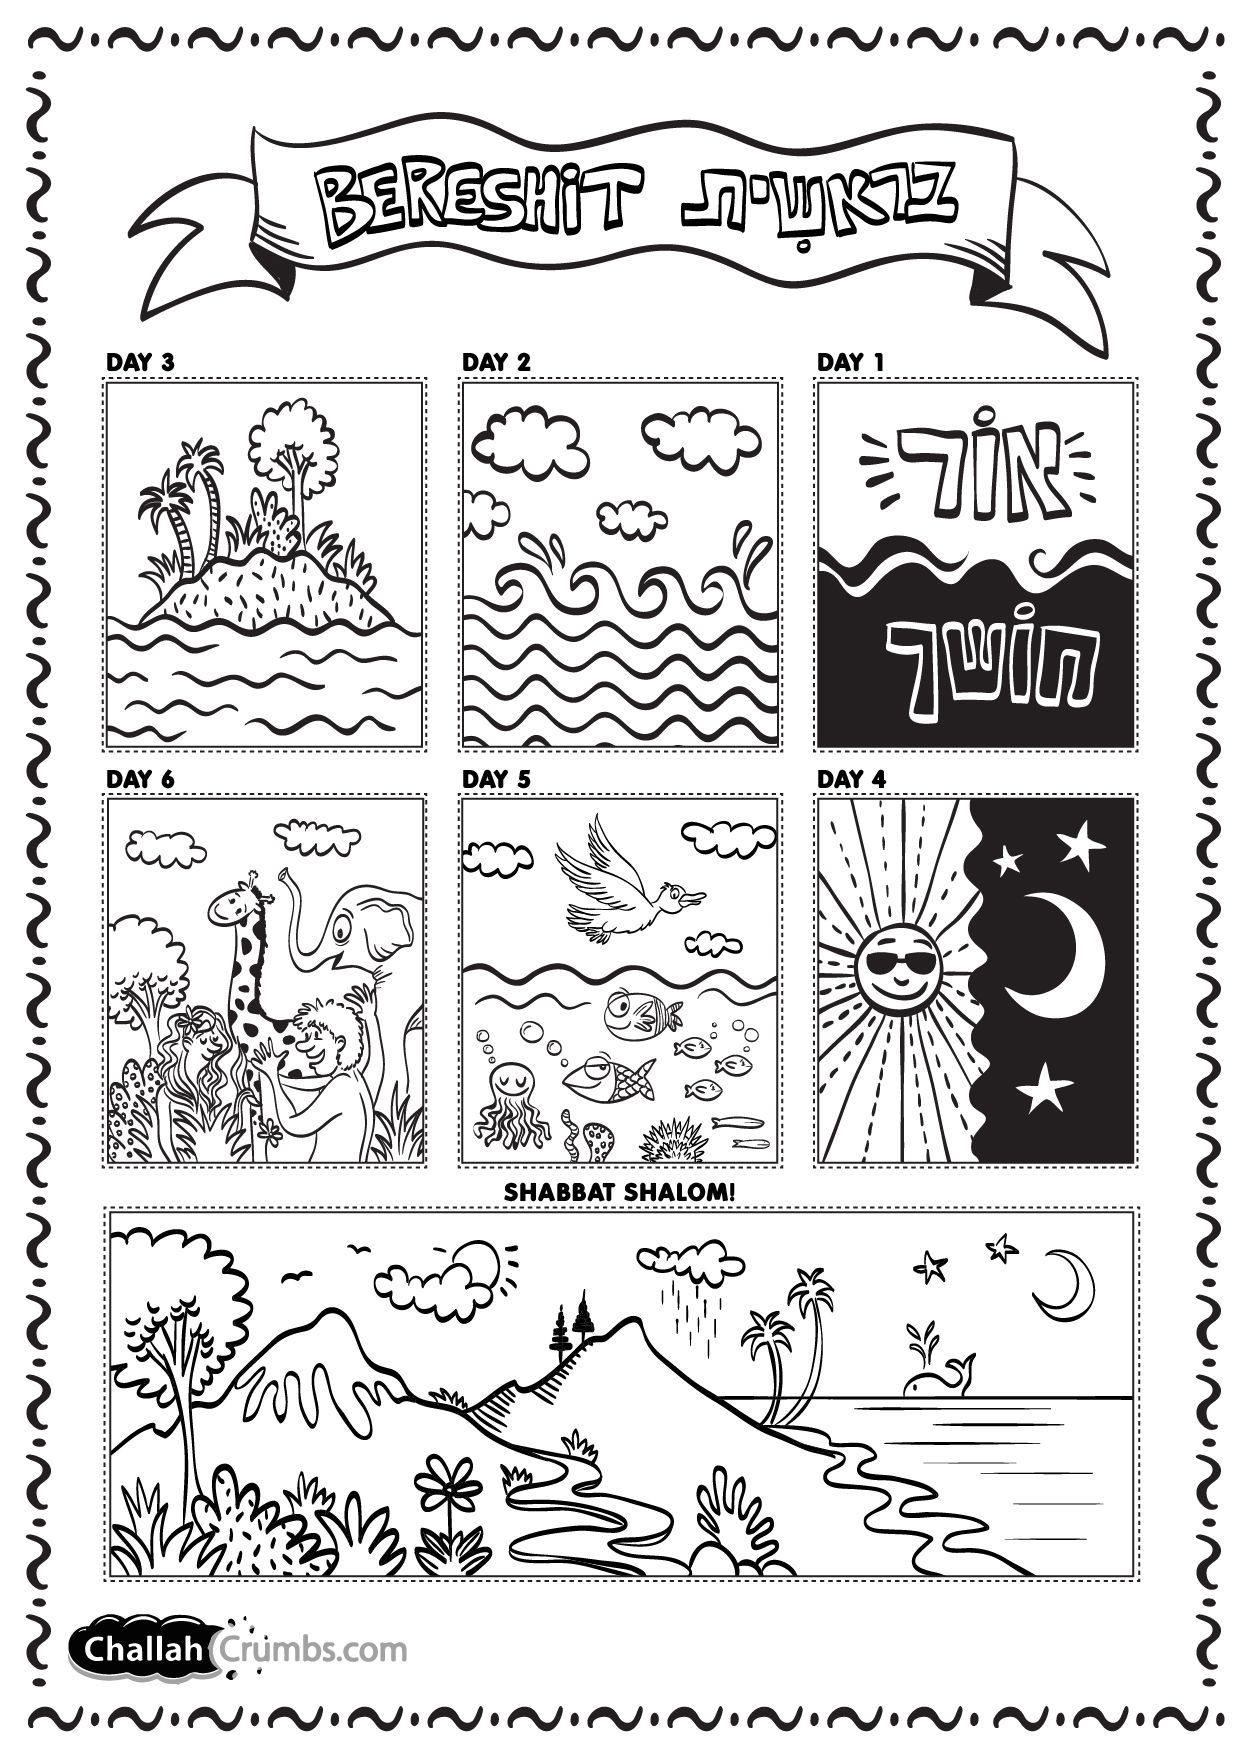 This Is An Adorable Coloring Sheet For The Week Of Creation From